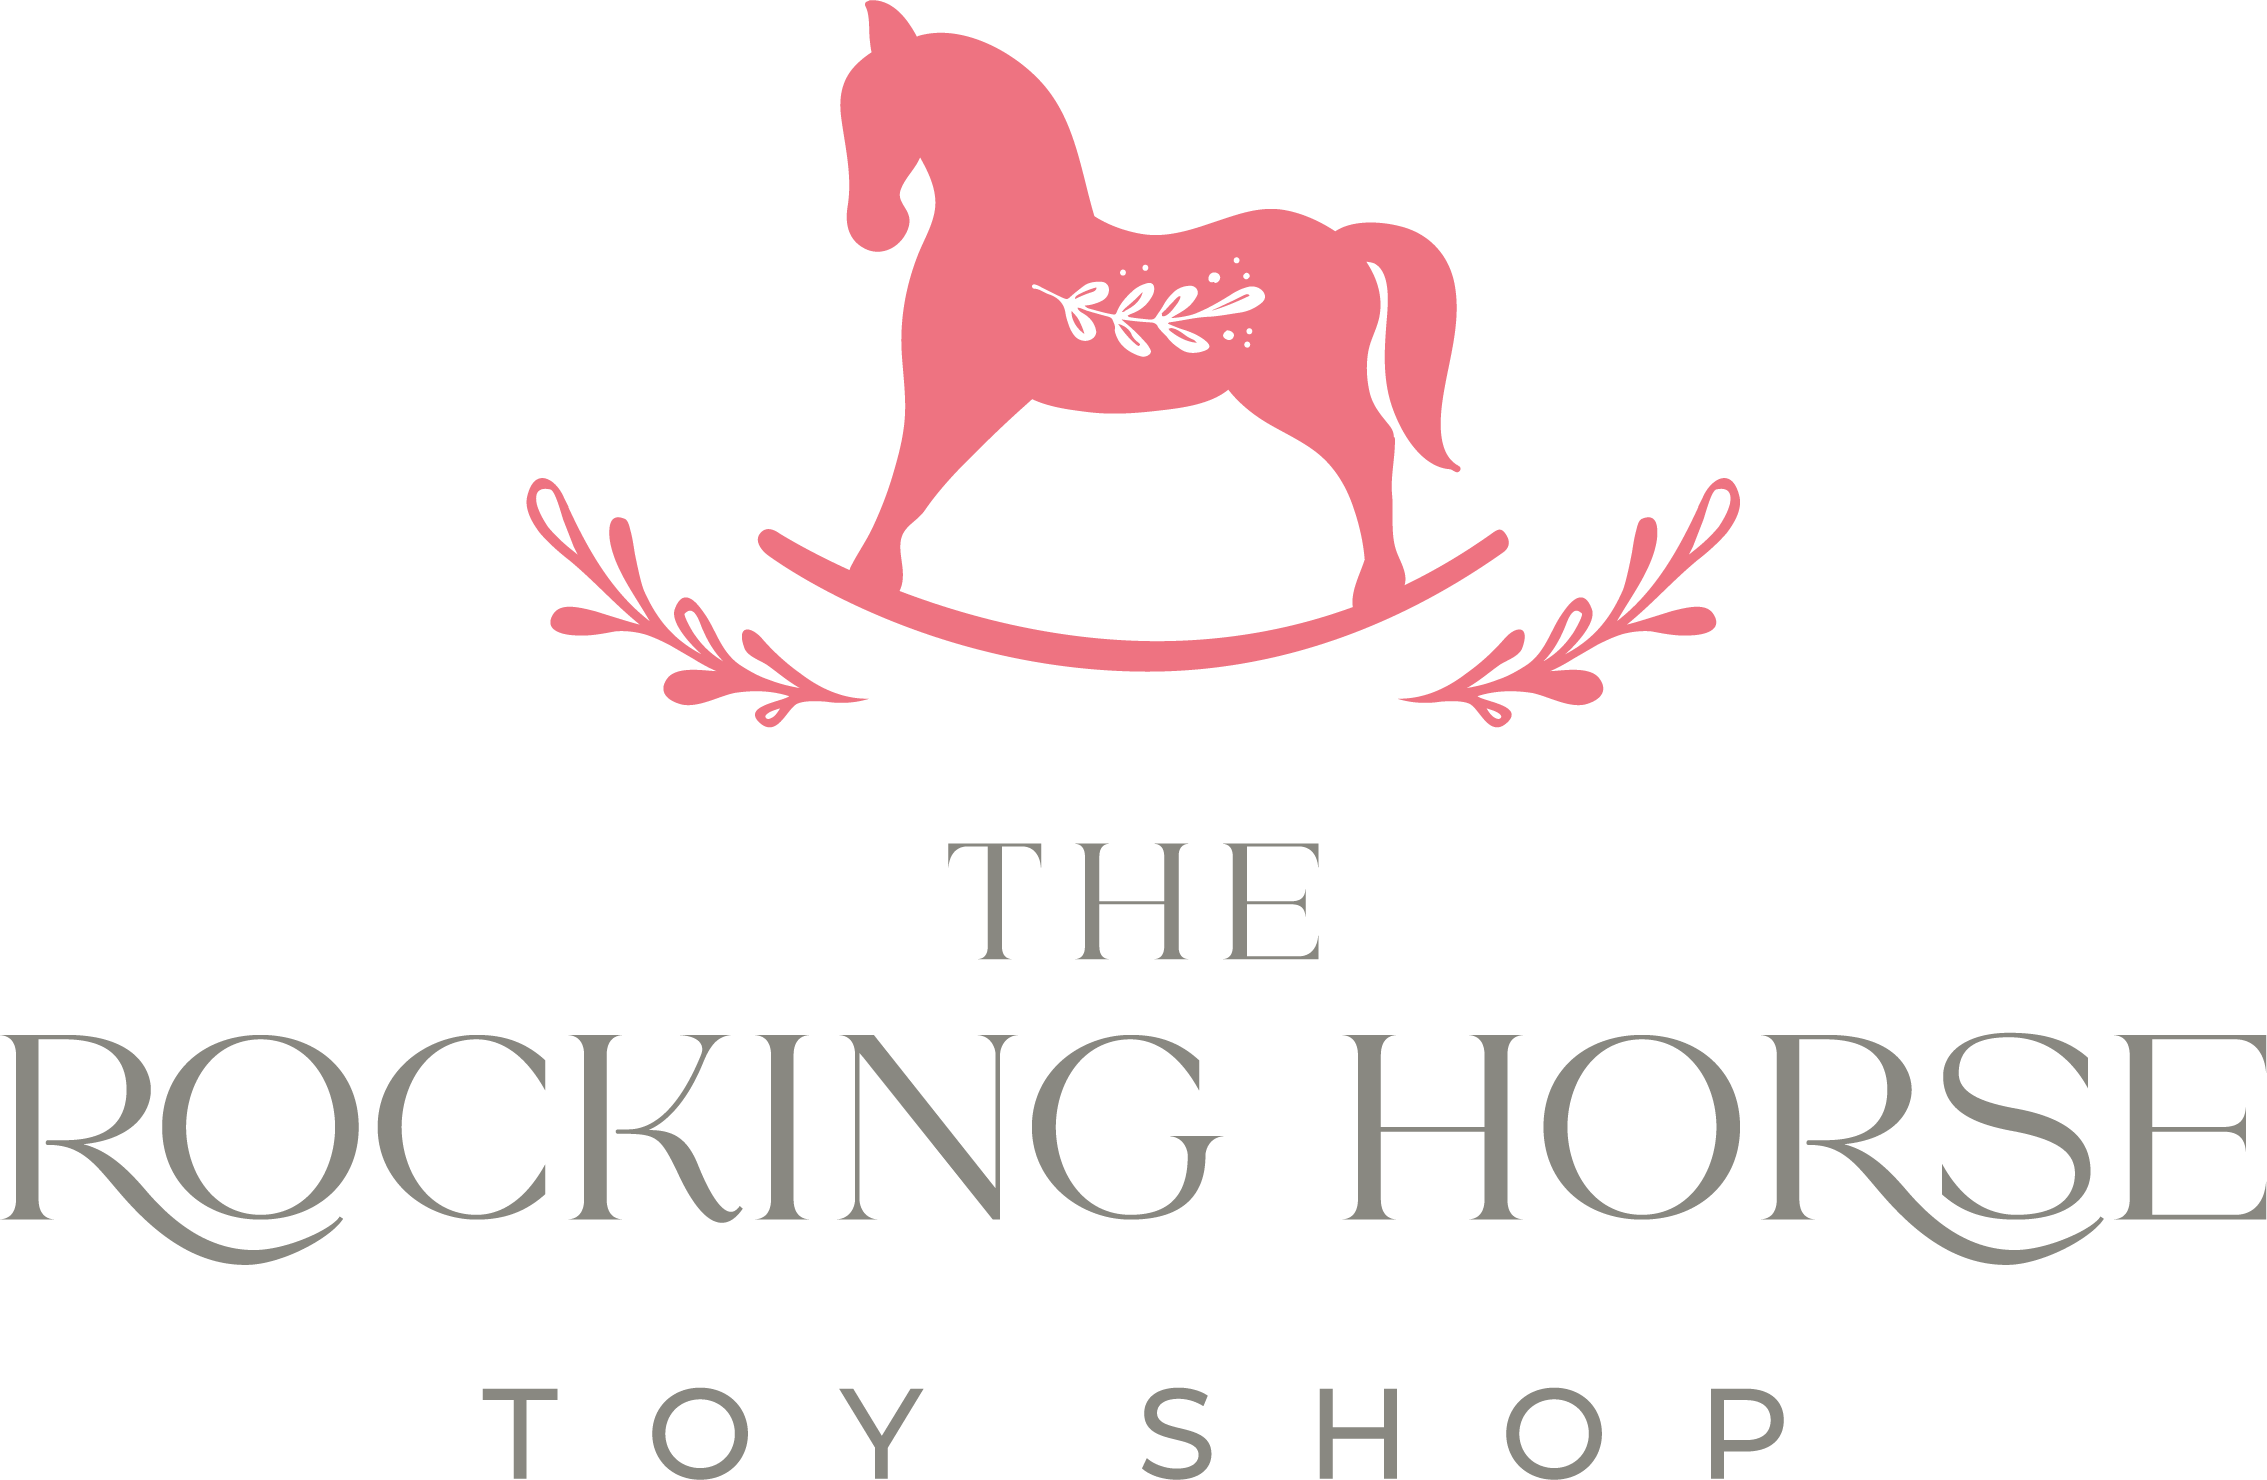 The Rocking Horse Toy Shop